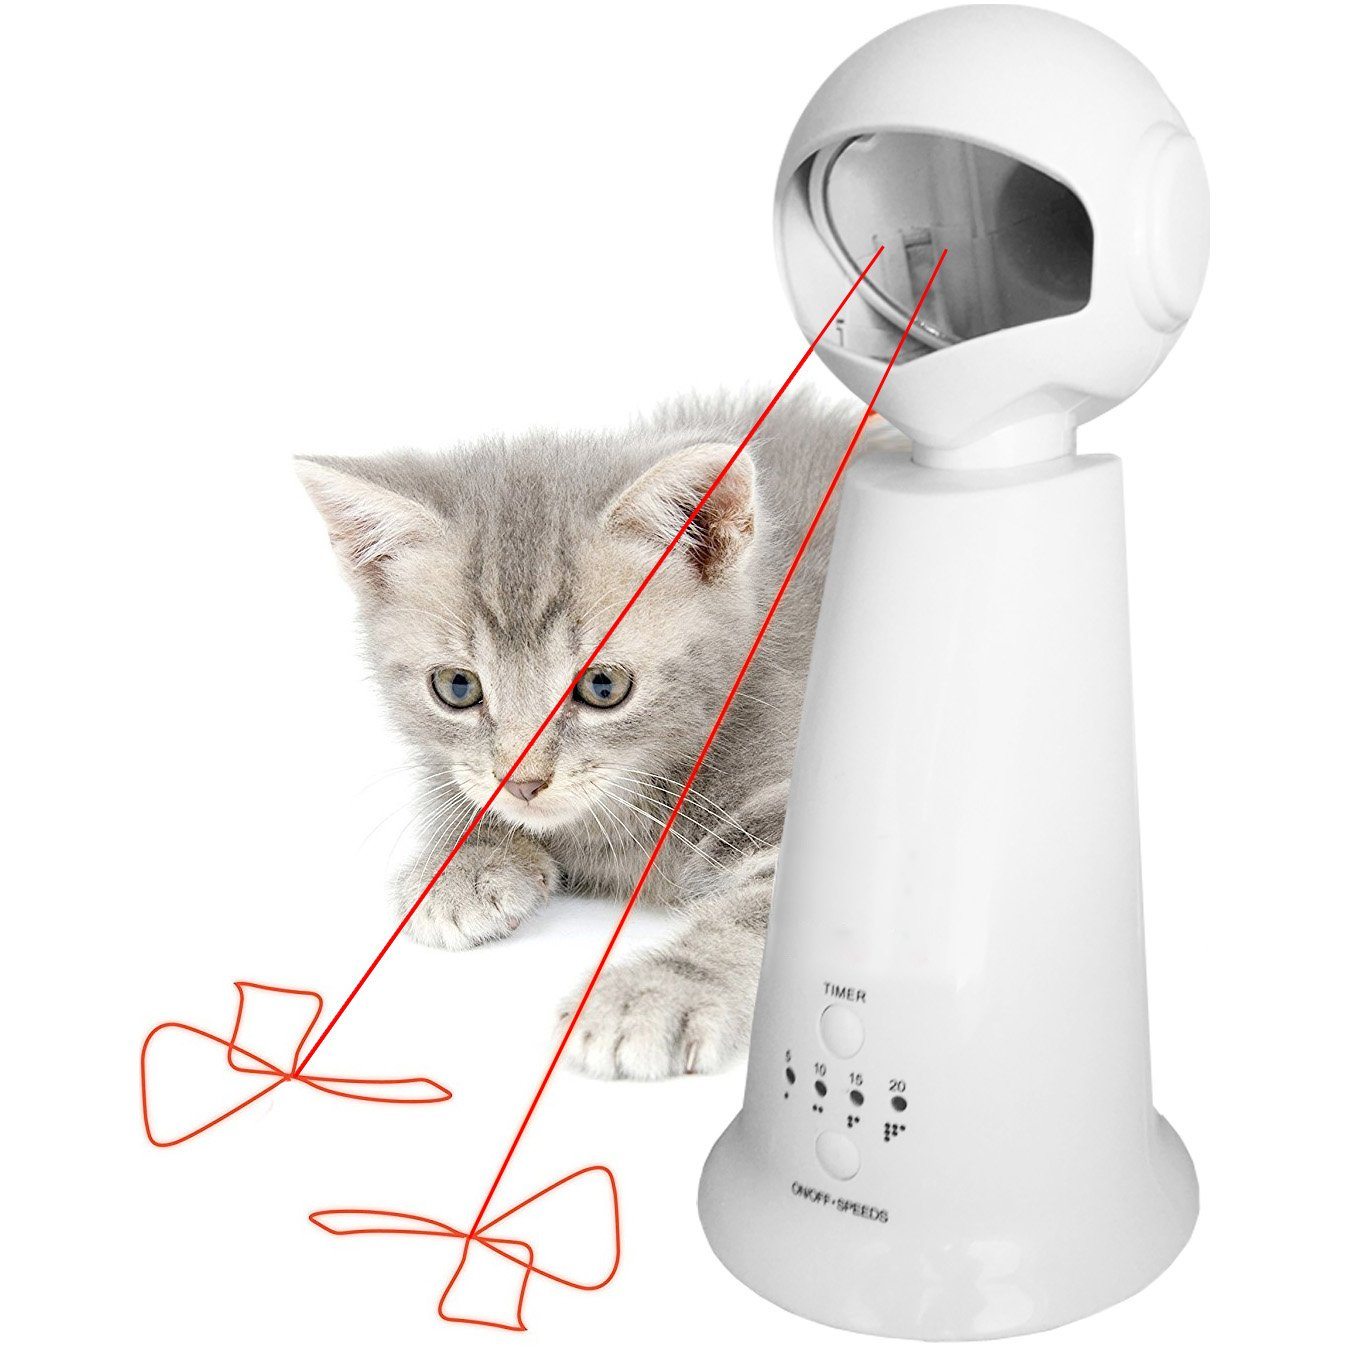 Automatic Rotating Laser Pet Cat Toy - Interactive, Fun For Cats & Dogs - Exercise Entertainment Training Tool 360º Training Pointer